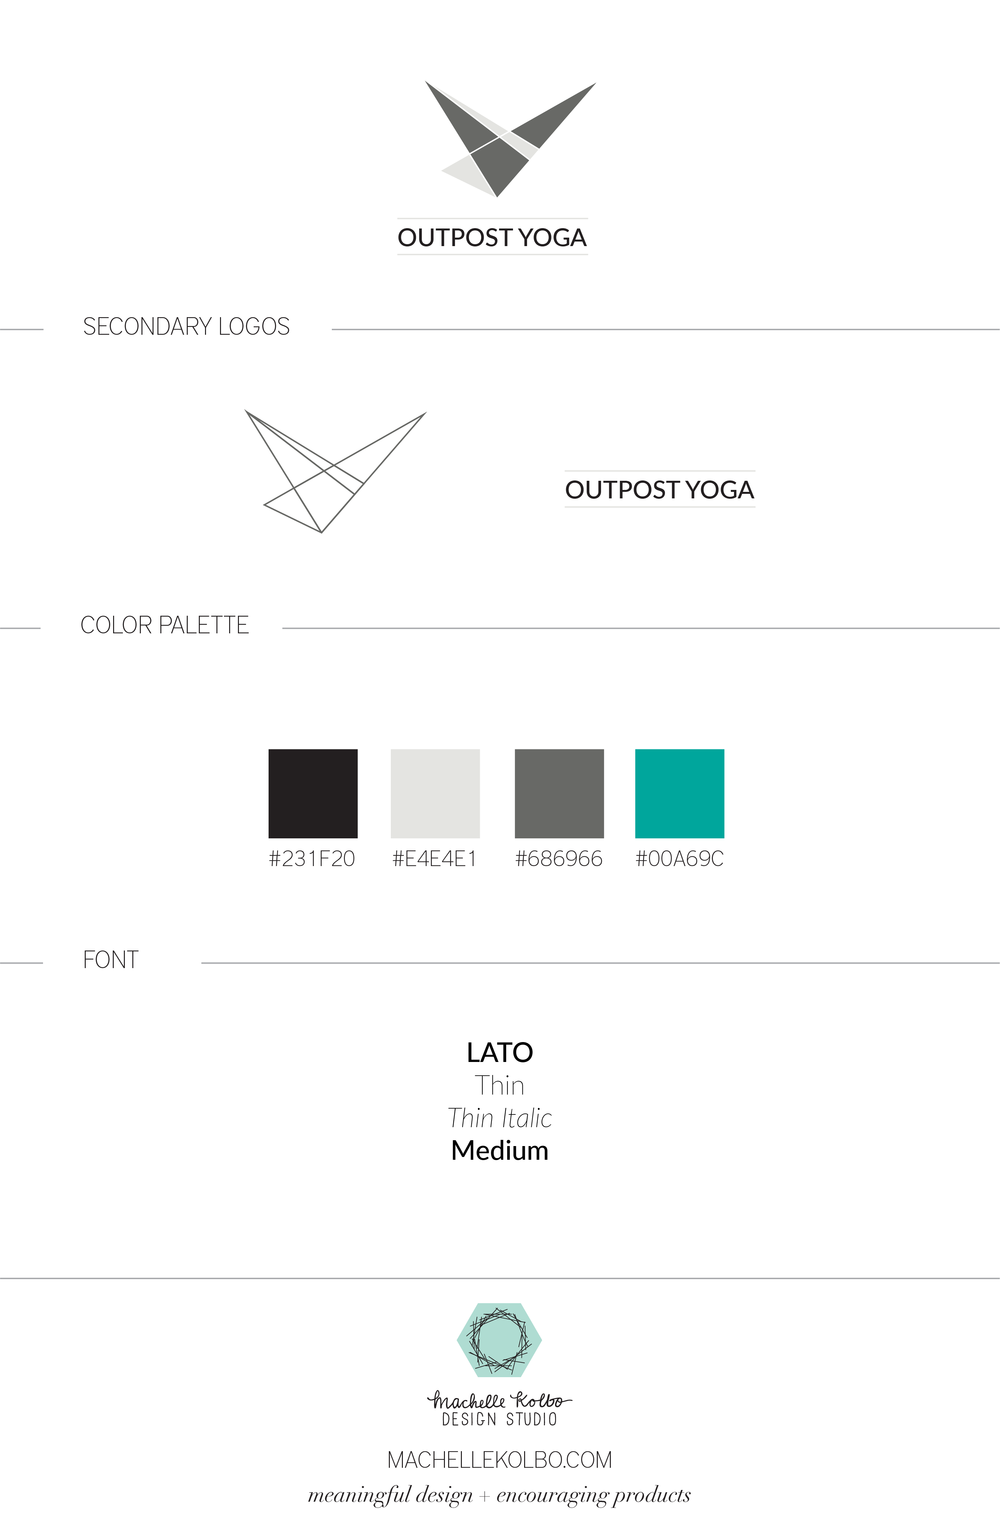 Outpost Yoga | Machelle Kolbo Design Studio